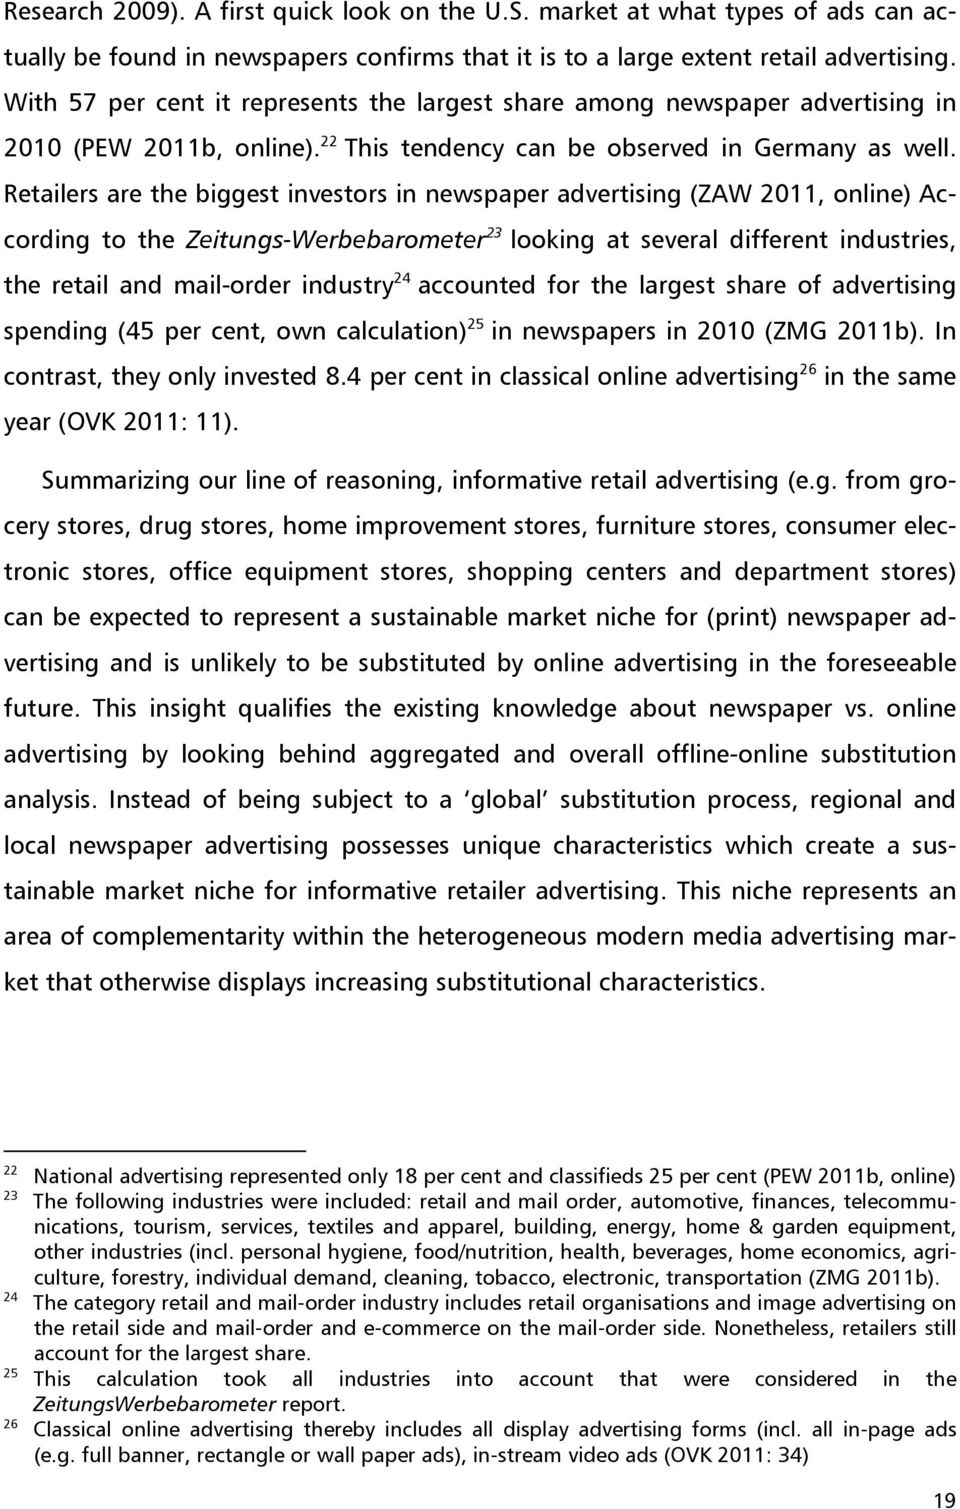 Retailers are the biggest investors in newspaper advertising (ZAW 2011, online) According to the Zeitungs-Werbebarometer 23 looking at several different industries, the retail and mail-order industry